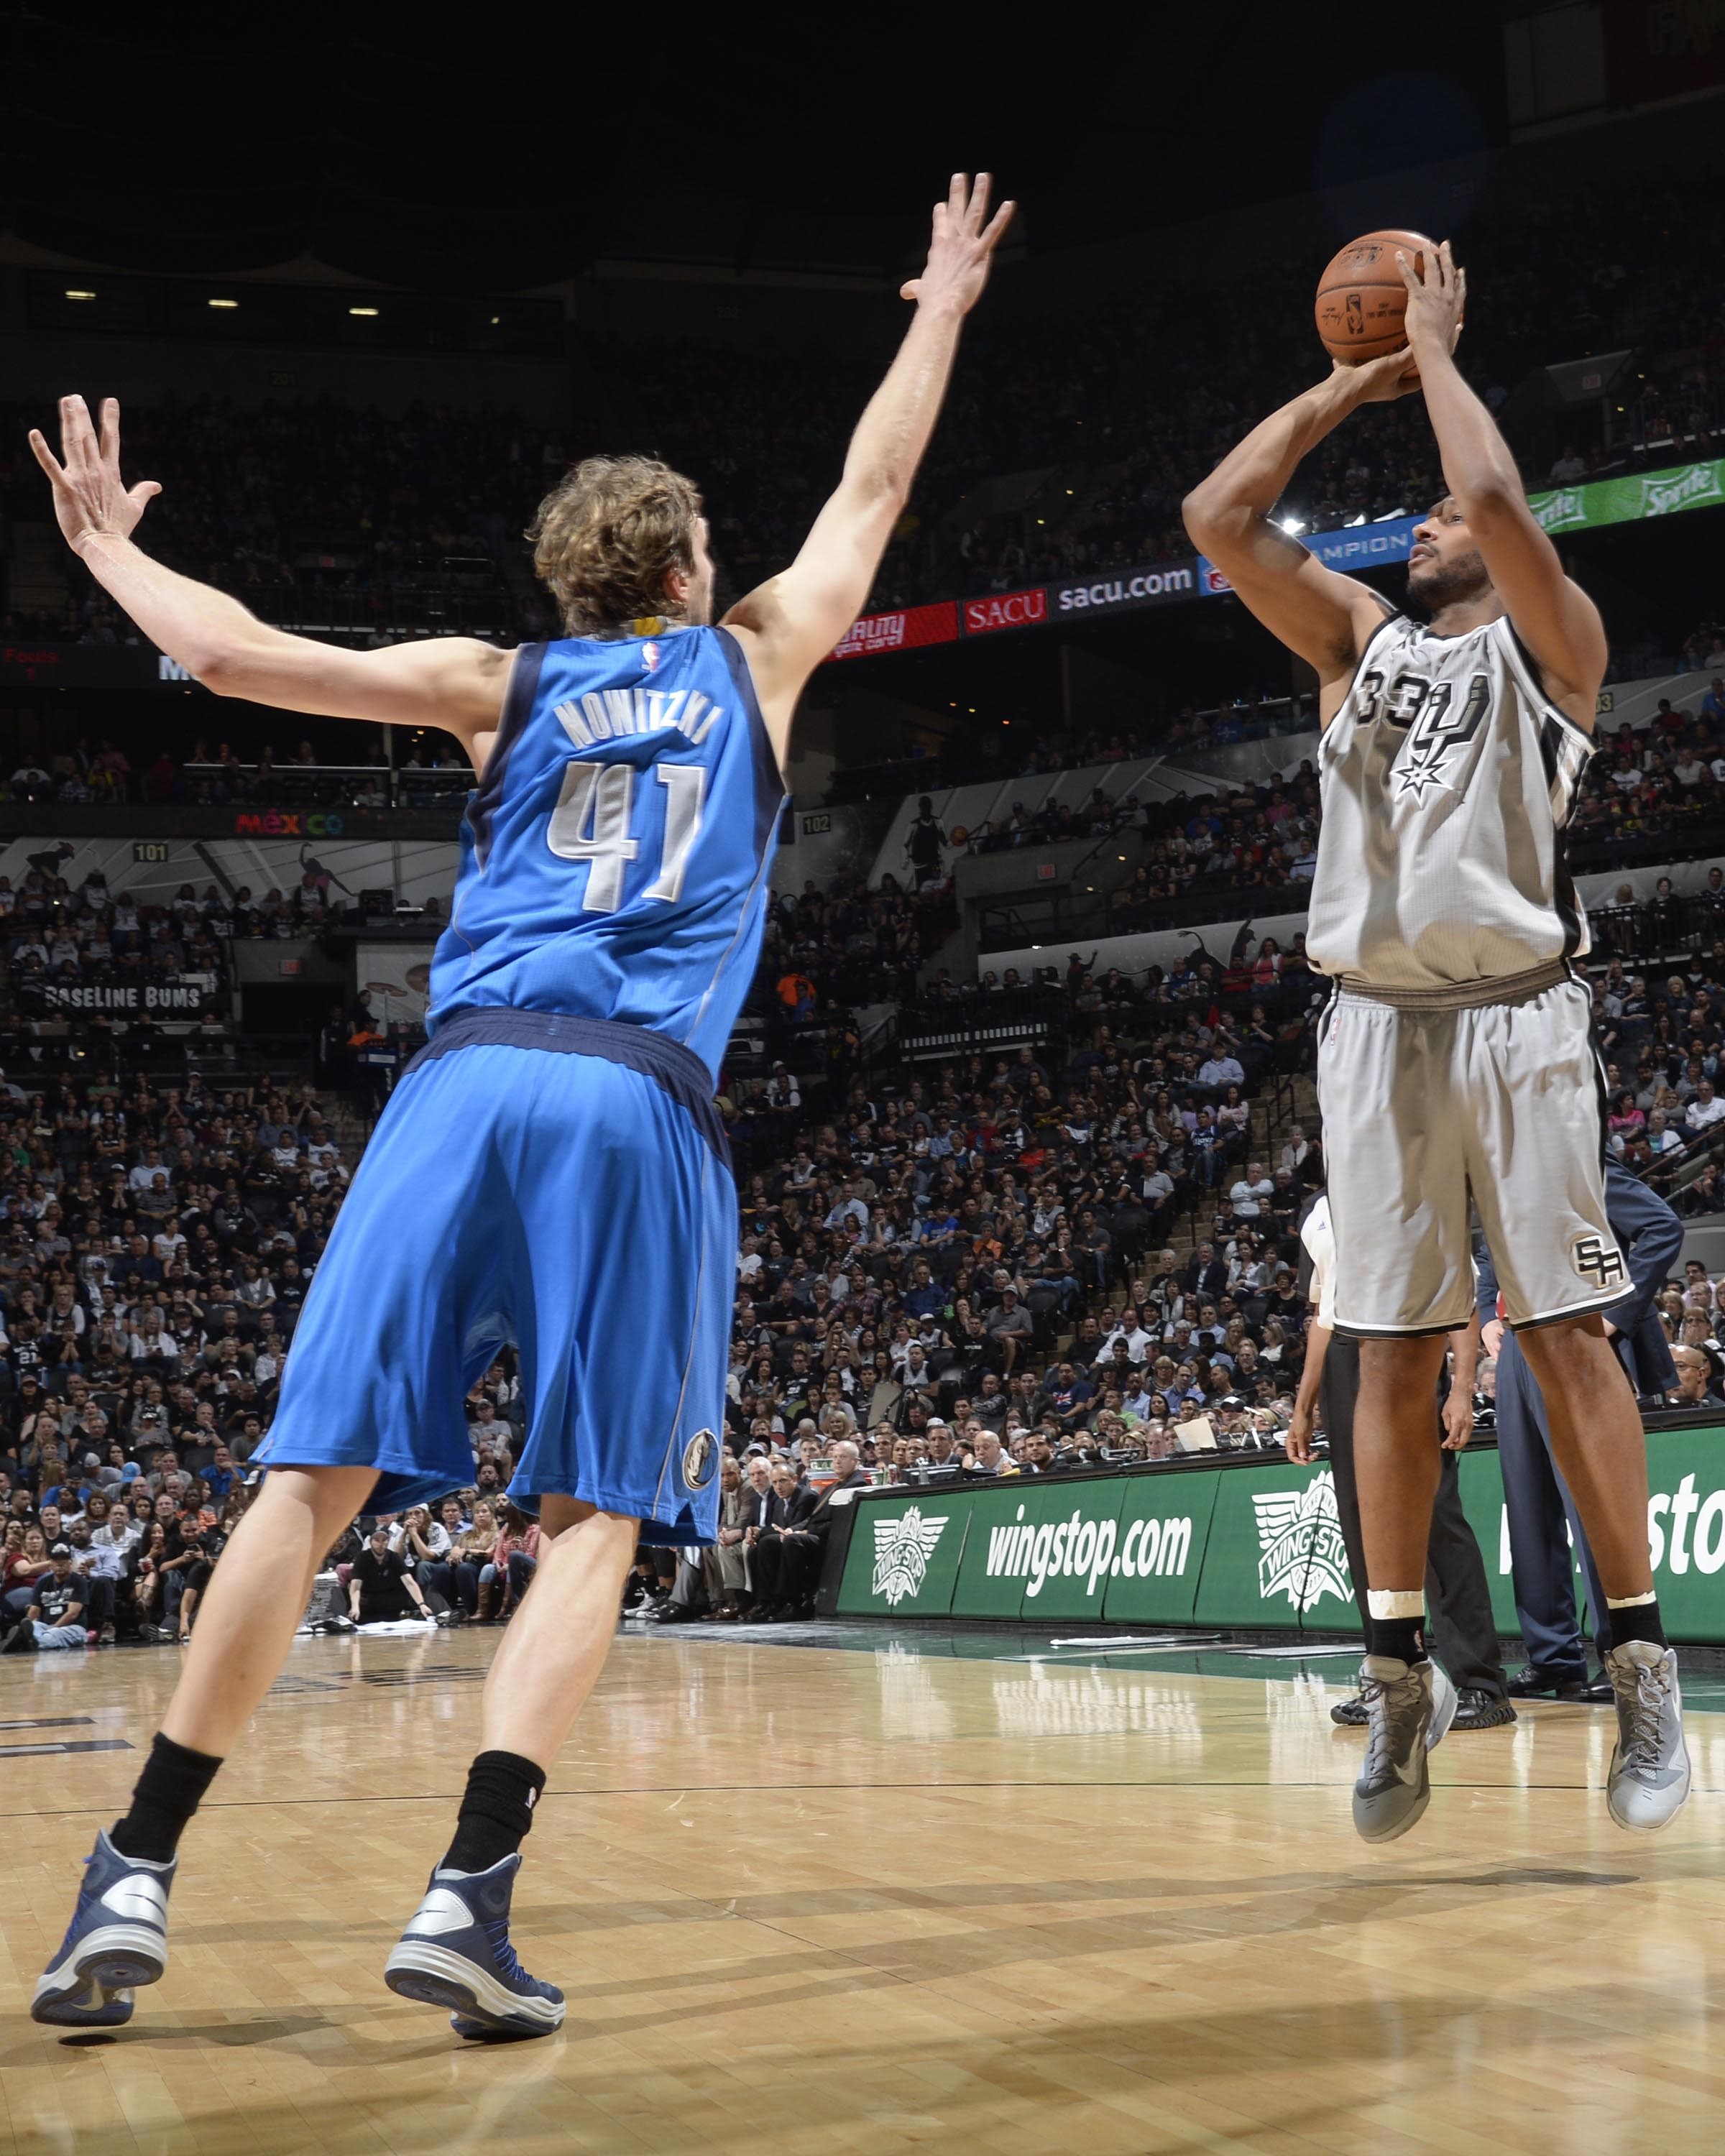 Diaw scores 19 to lead Spurs in 94-76 win over Mavericks